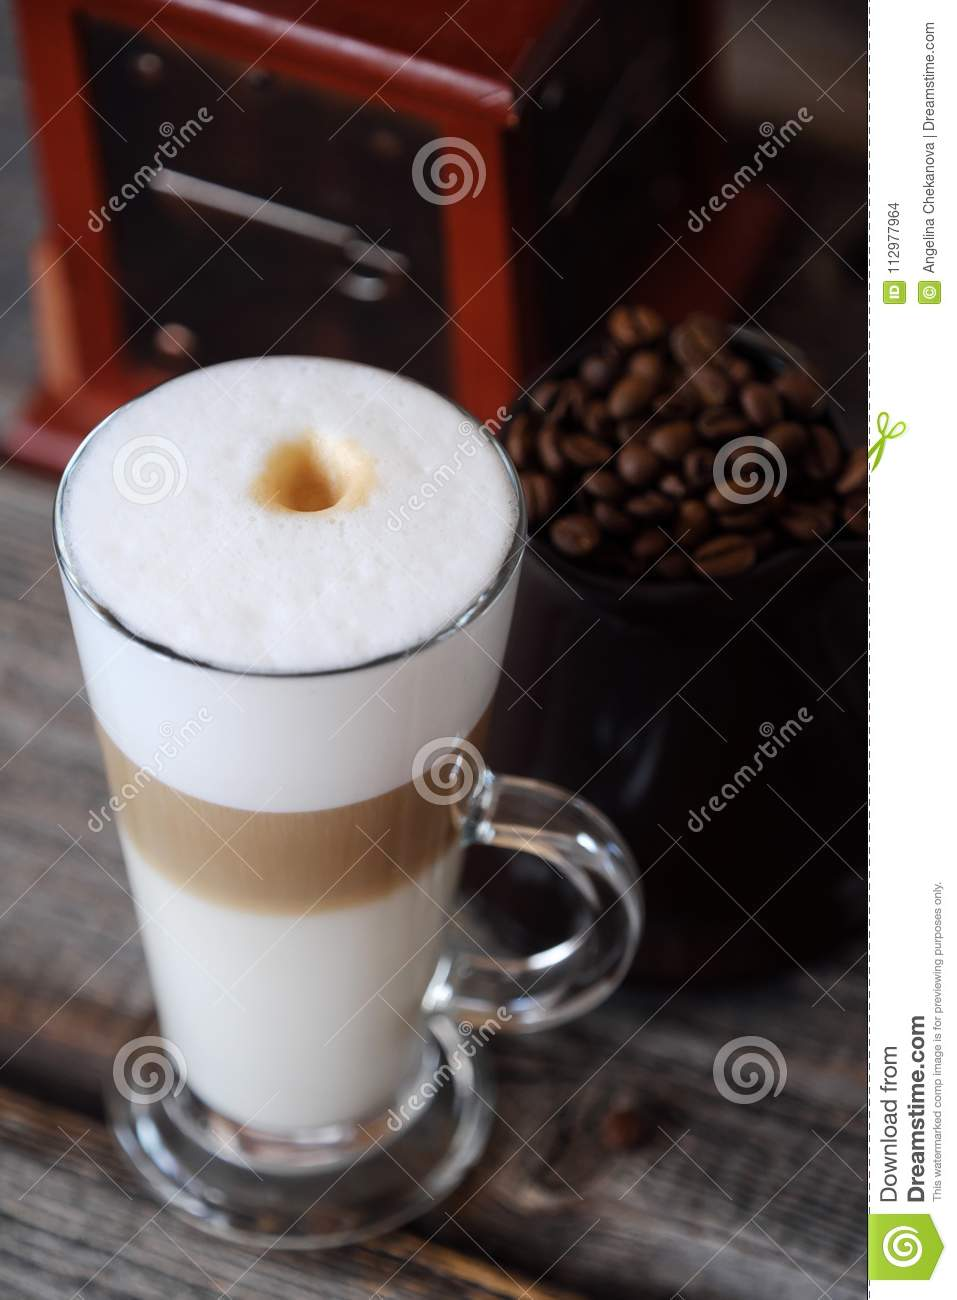 Delicious fresh latte coffee on wooden table